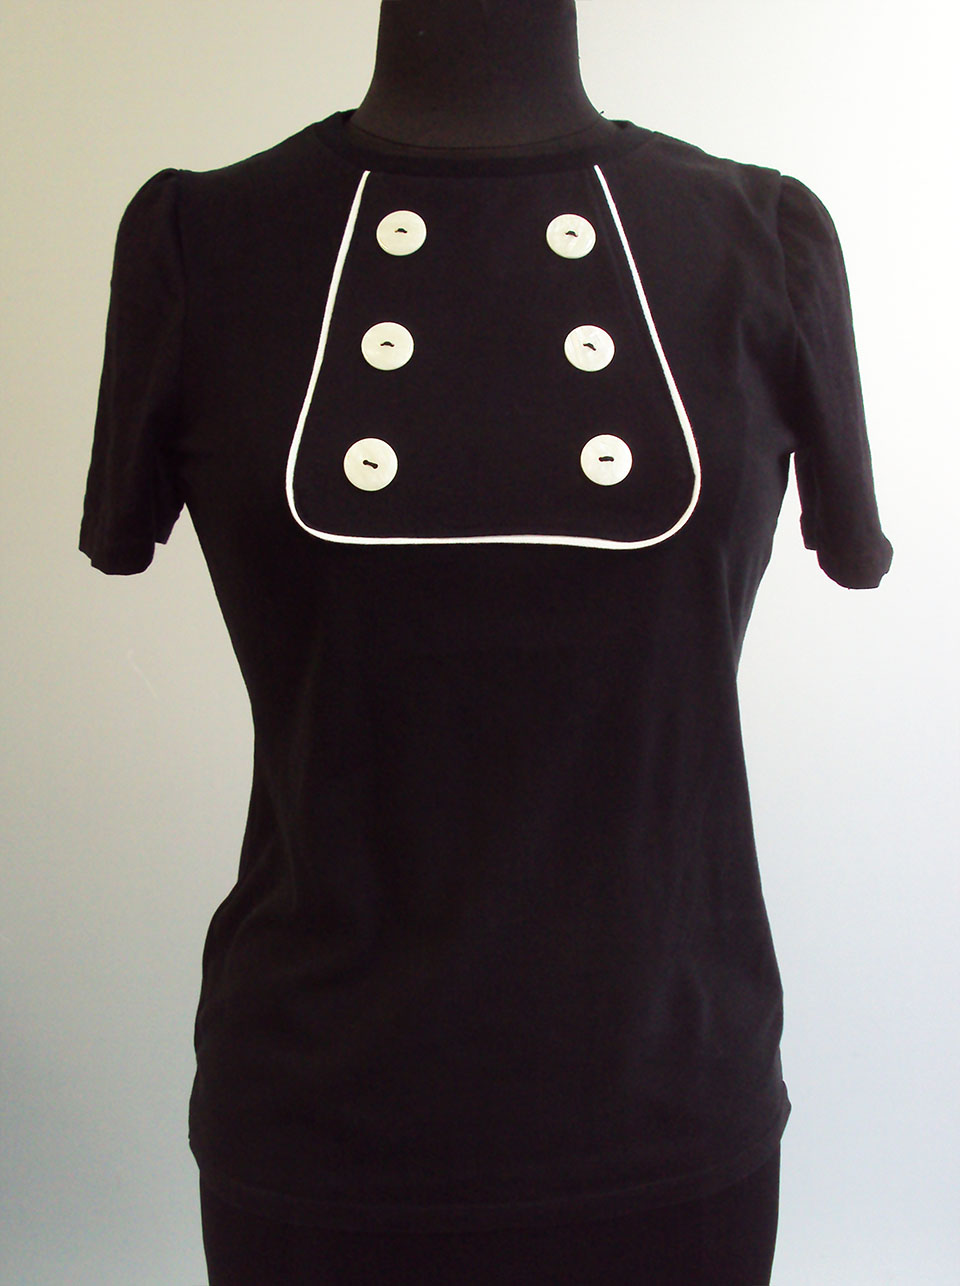 ... from unwanted men's T-shirts to make a super-wearable adult version.